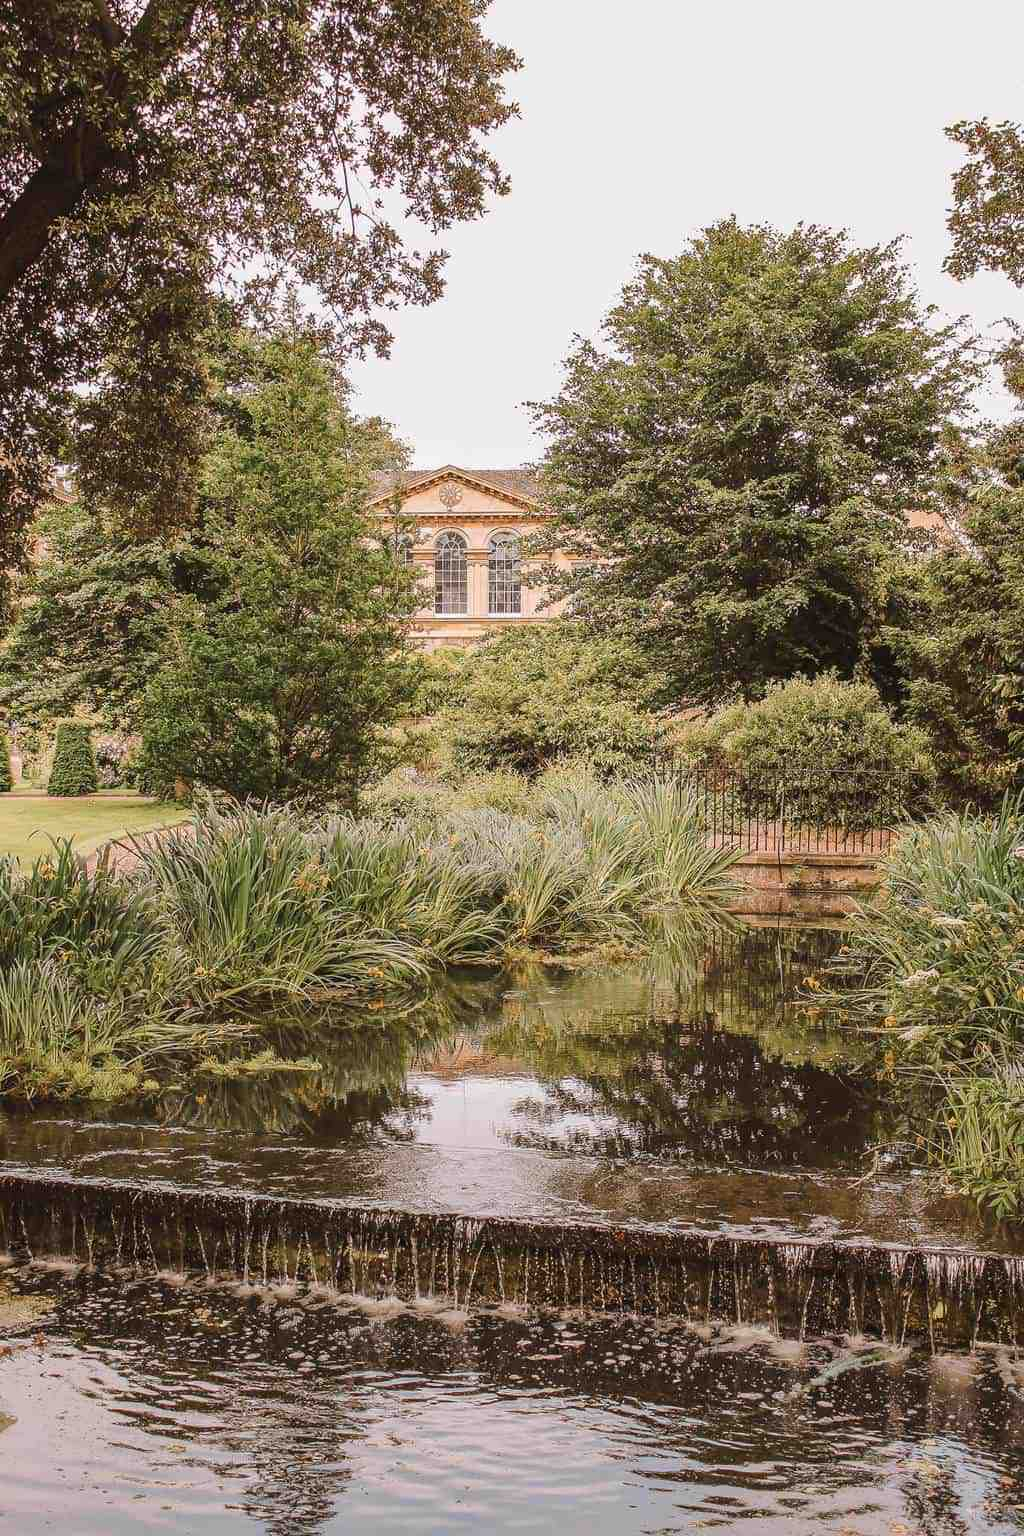 Worcester College - 10 Most Beautiful Colleges at Oxford University According to a Student